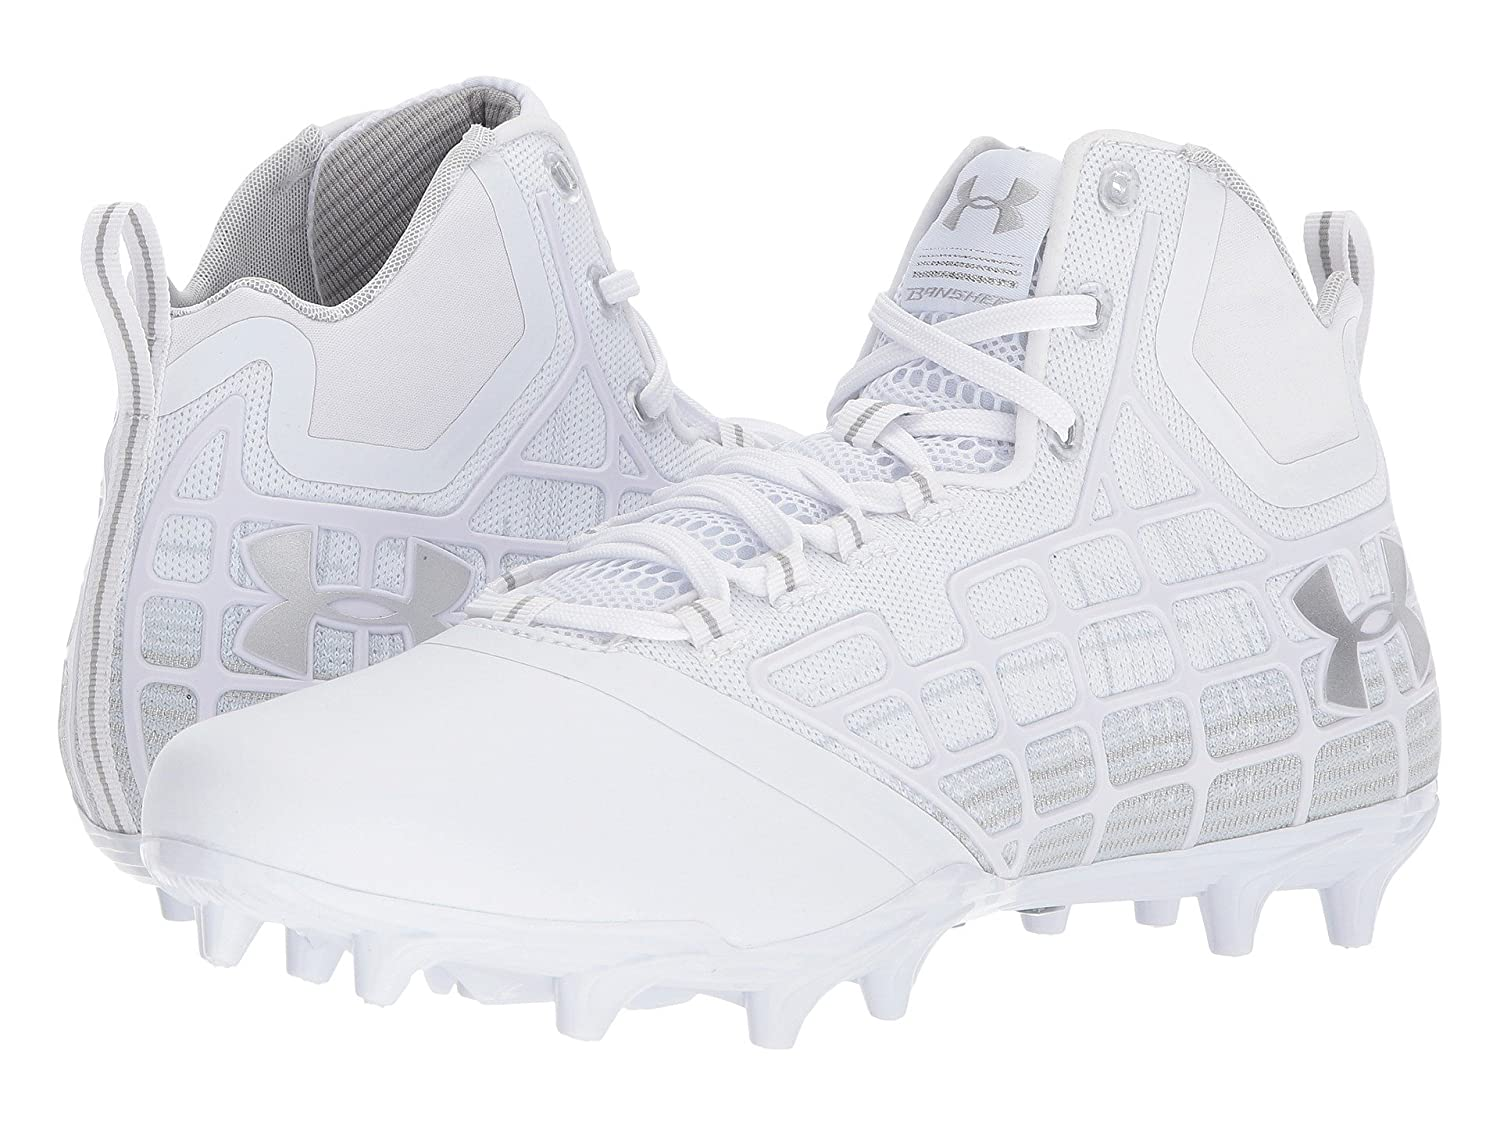 (アンダーアーマー) UNDER ARMOUR メンズ野球ベースボールシューズ靴 UA Banshee Mid MC White/Metallic Silver 2 8.5 (26.5cm) D Medium B07BZZVPDH